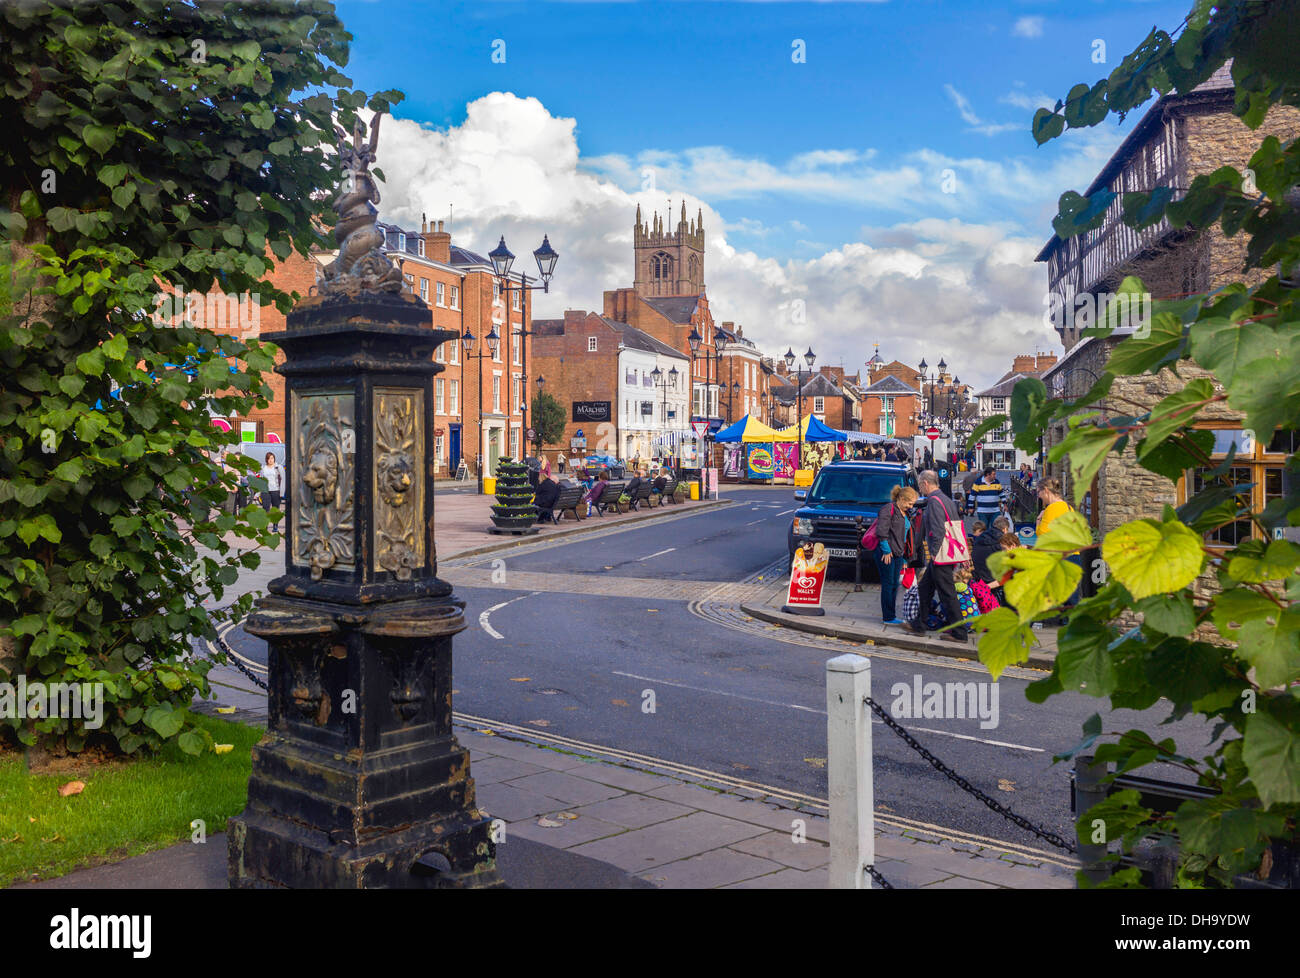 A view of Ludlow's 900 year old market with a ornamental disused water point framing the view across the colourful square - Stock Image